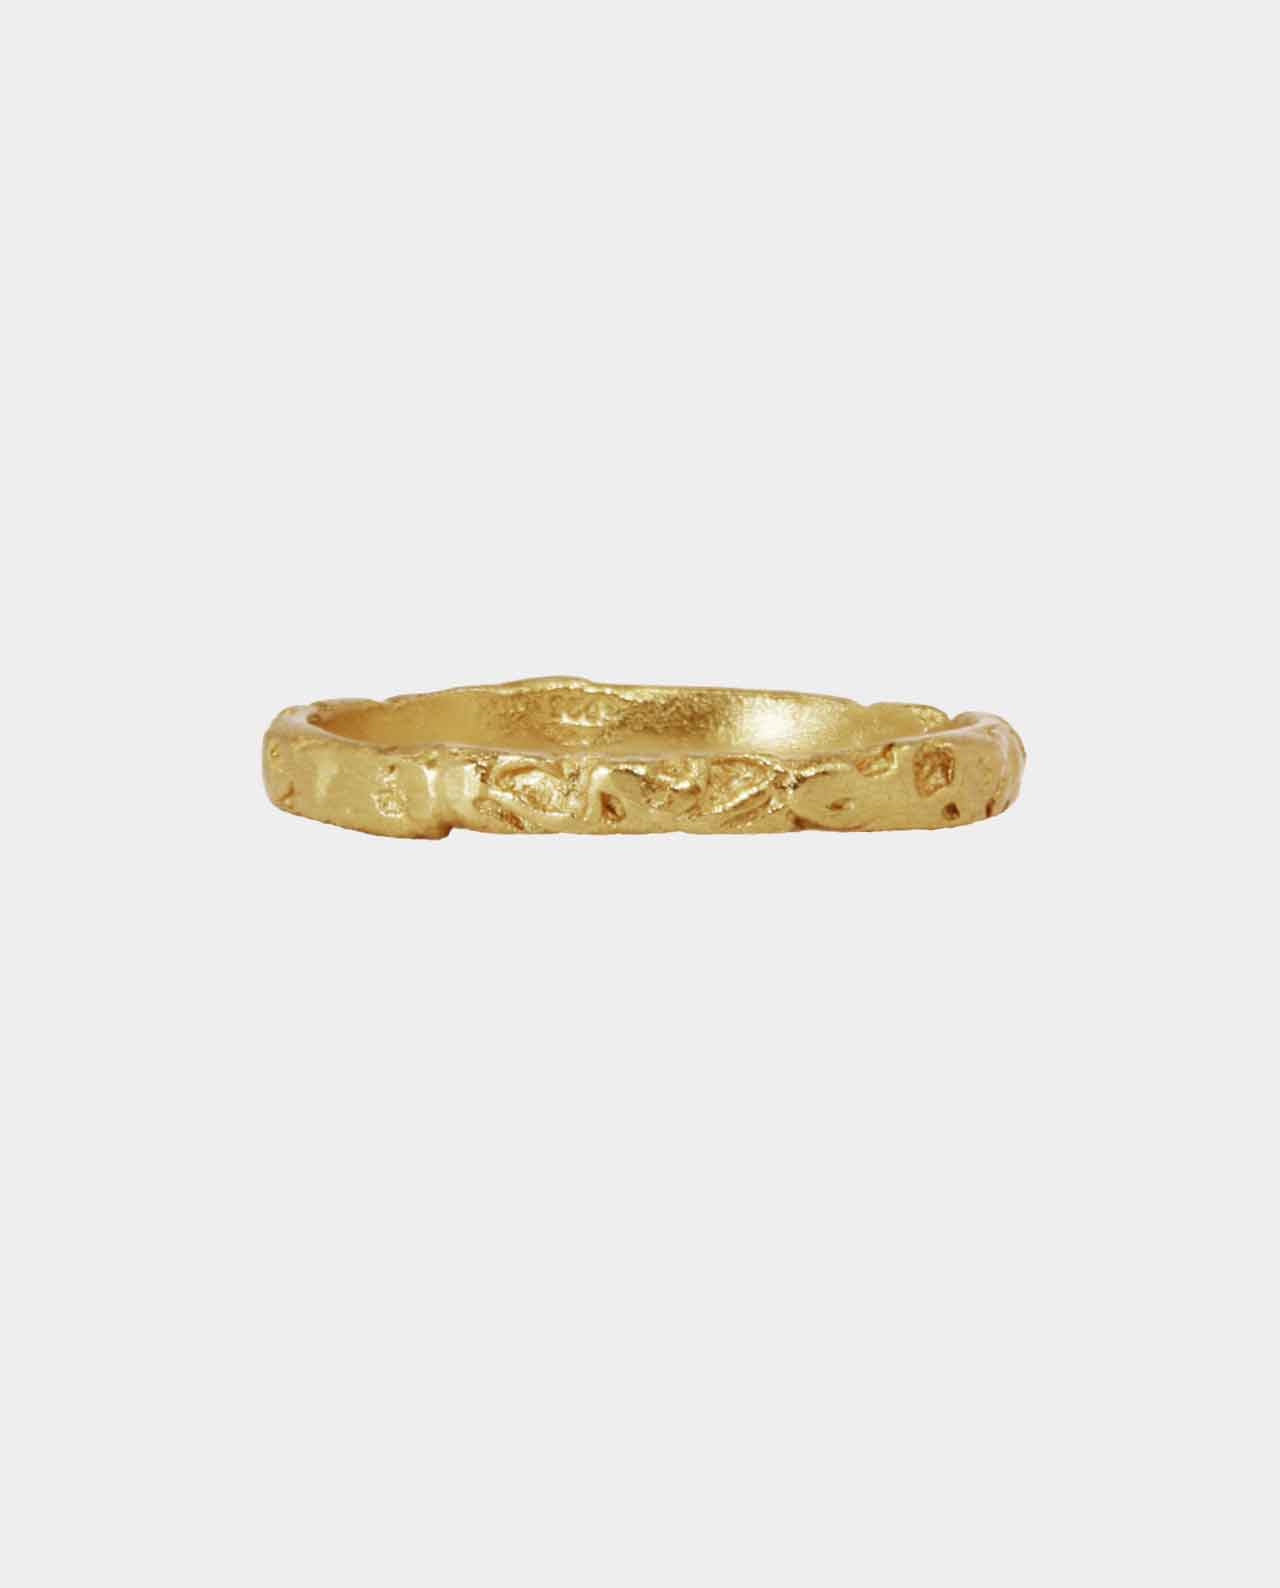 An original finger ring designed like antiquity jewelry with beautiful ornamentations in an original design - a piece of jewelry for independent women